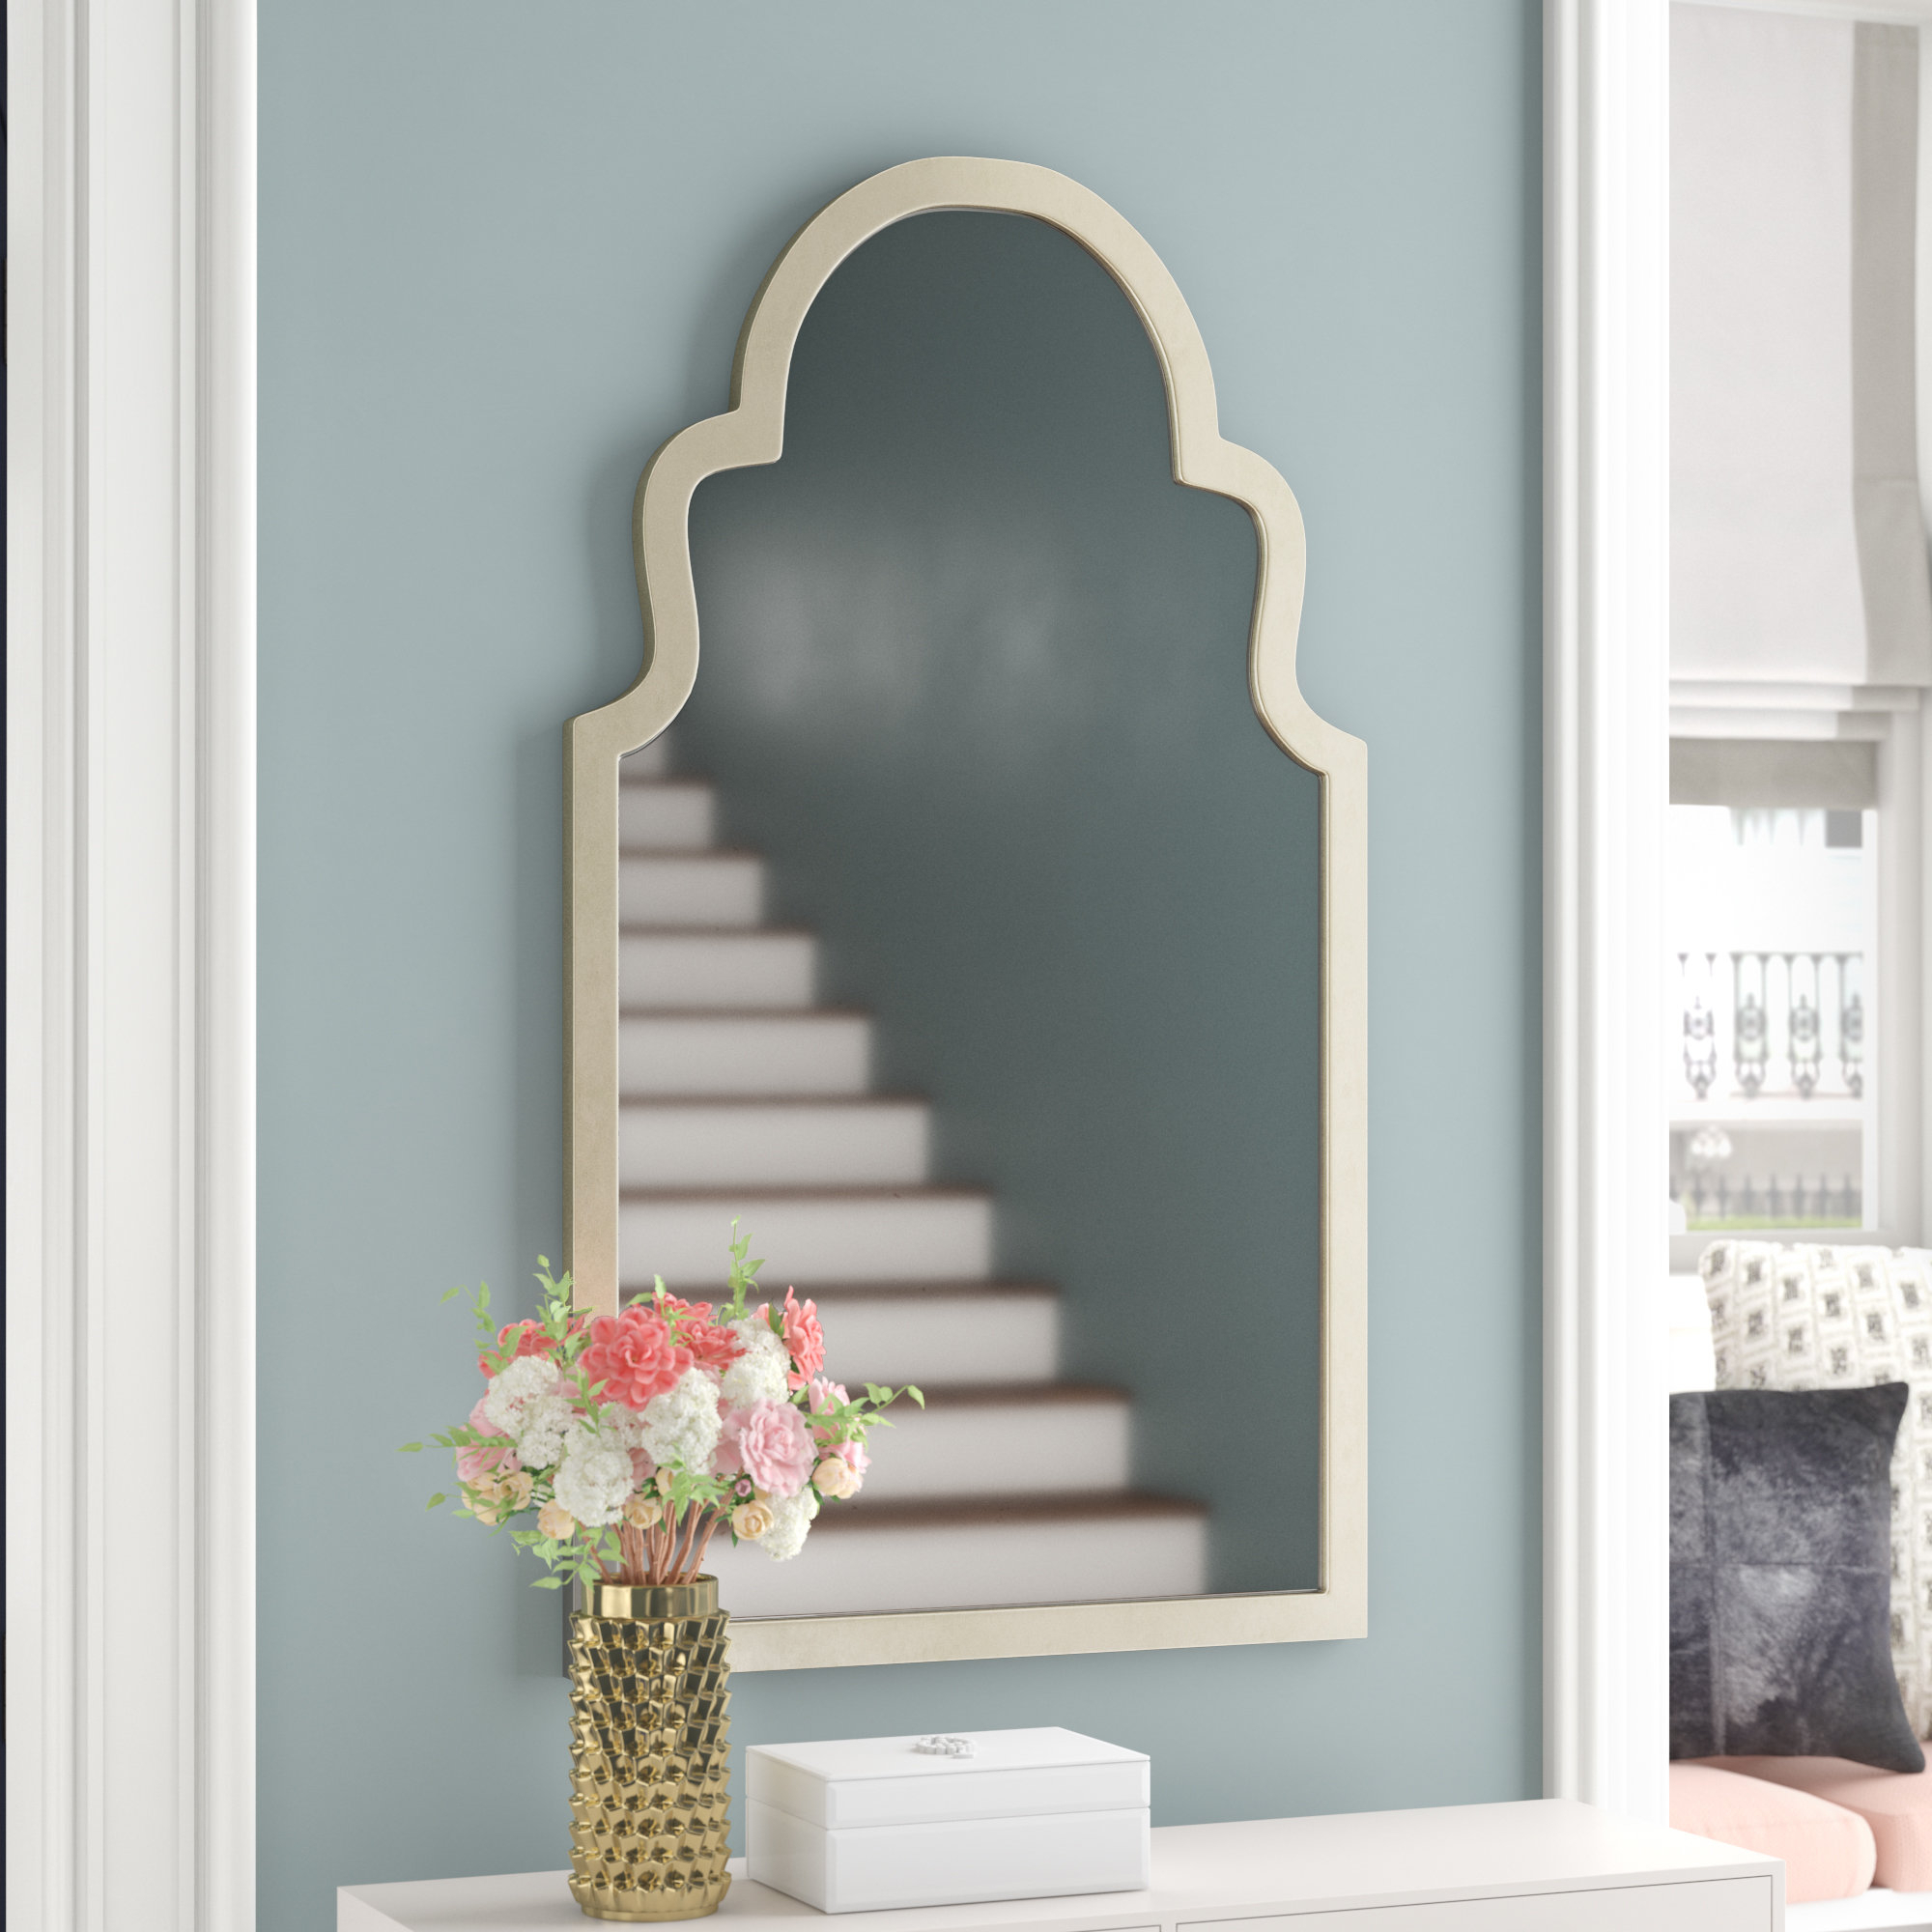 Willa Arlo Interiors Arch Top Vertical Wall Mirror & Reviews intended for Arch Vertical Wall Mirrors (Image 29 of 30)